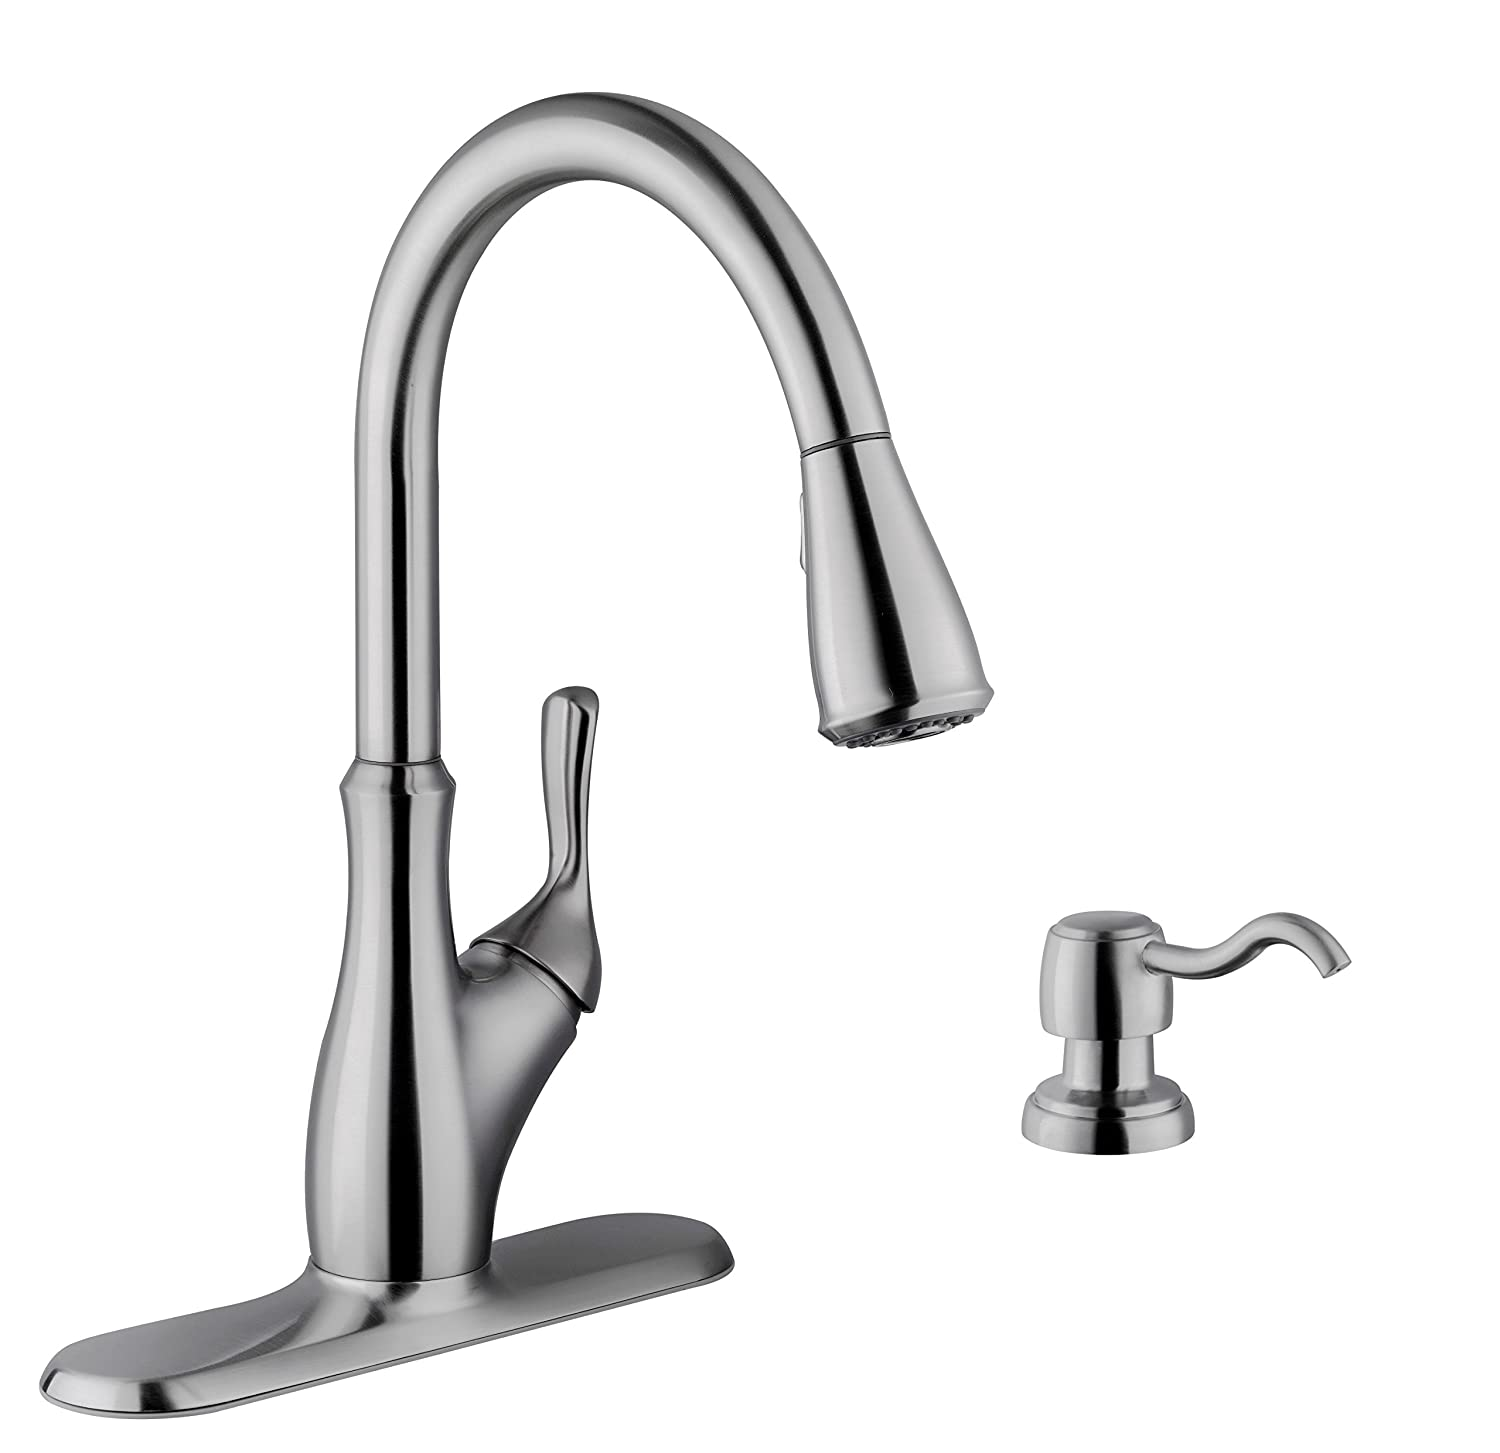 MS7636, Gooseneck kitchen faucet with pull out sprayer. Plus free soap  dispenser